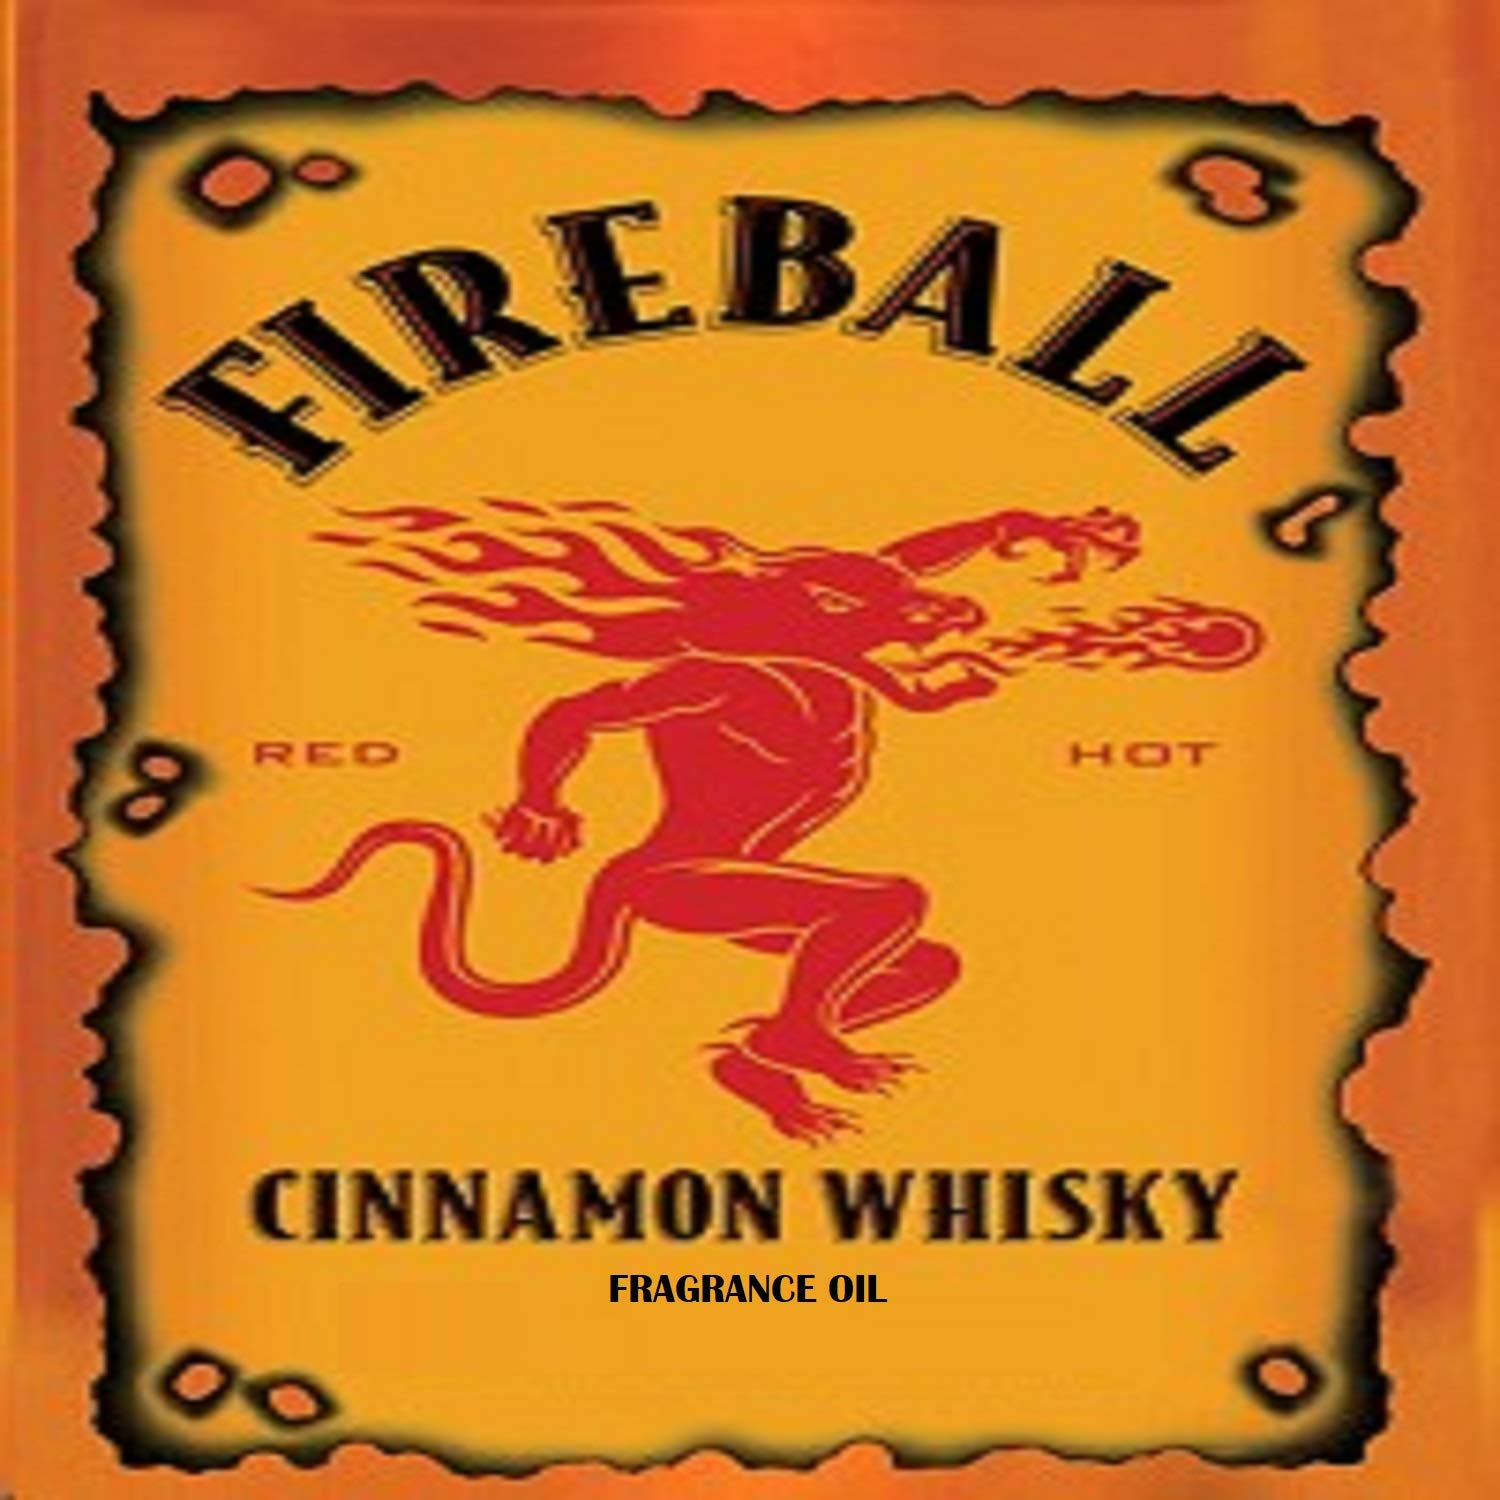 Fireball Whiskey Type Fragrance Oil 4 oz for Candle /& Soap Making